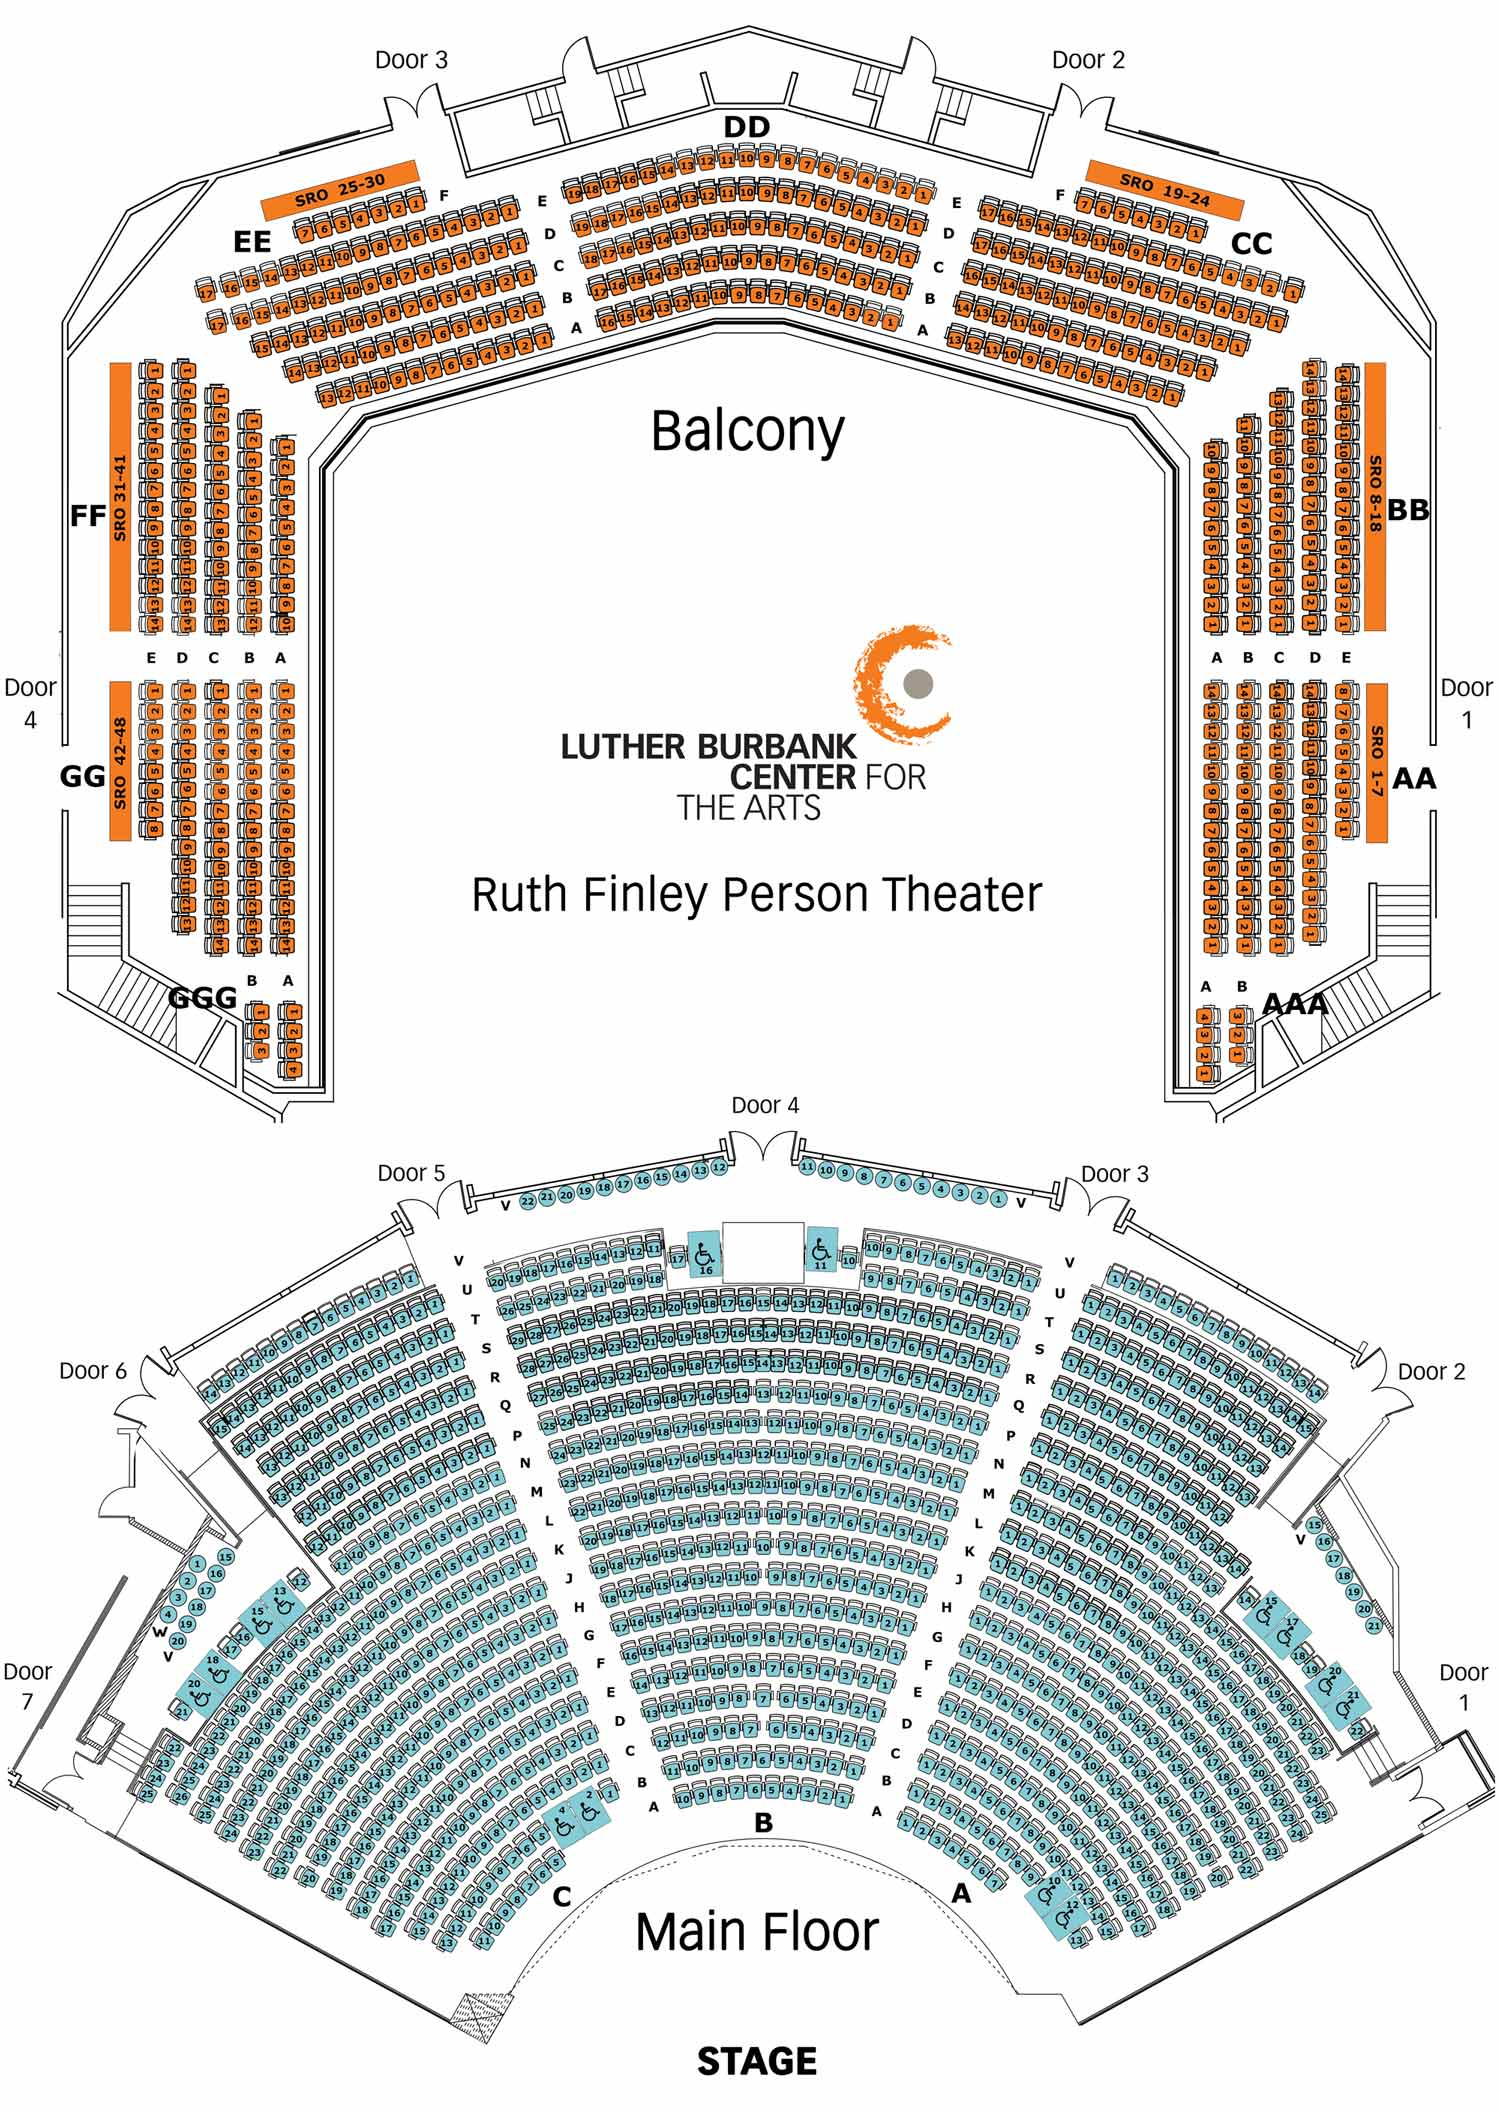 stage directions diagram person redarc bcdc wiring seating luther burbank center for the arts download chart pdf